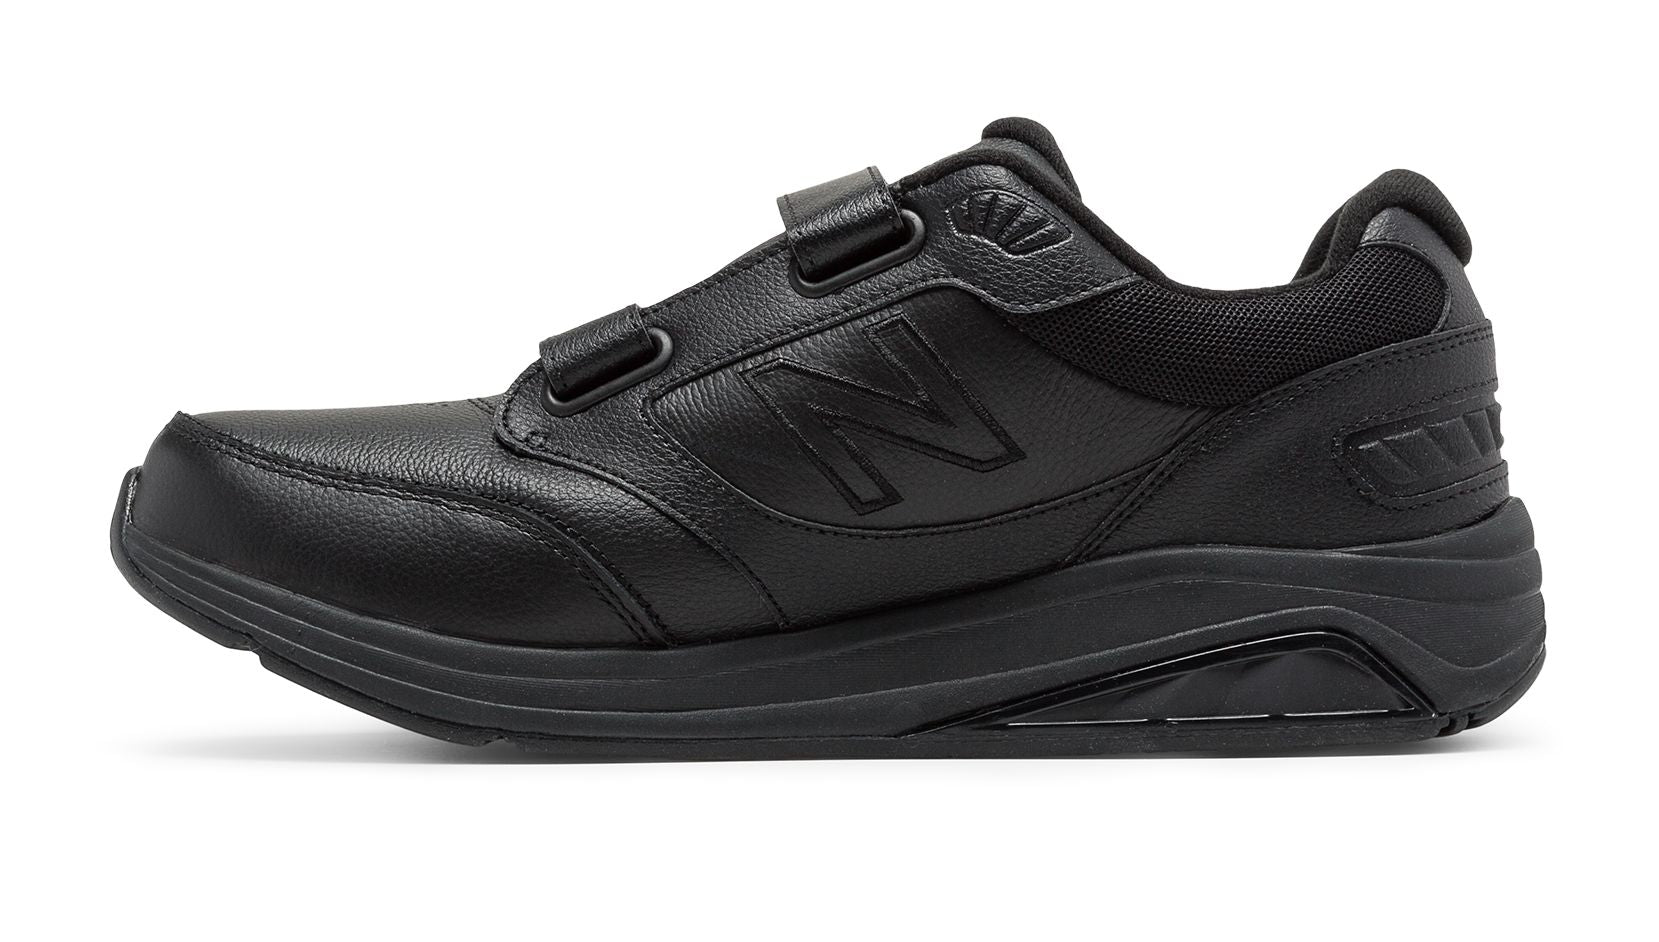 complimentary shipping the sale of shoes another chance MW928HB3 BLACK VELCRO